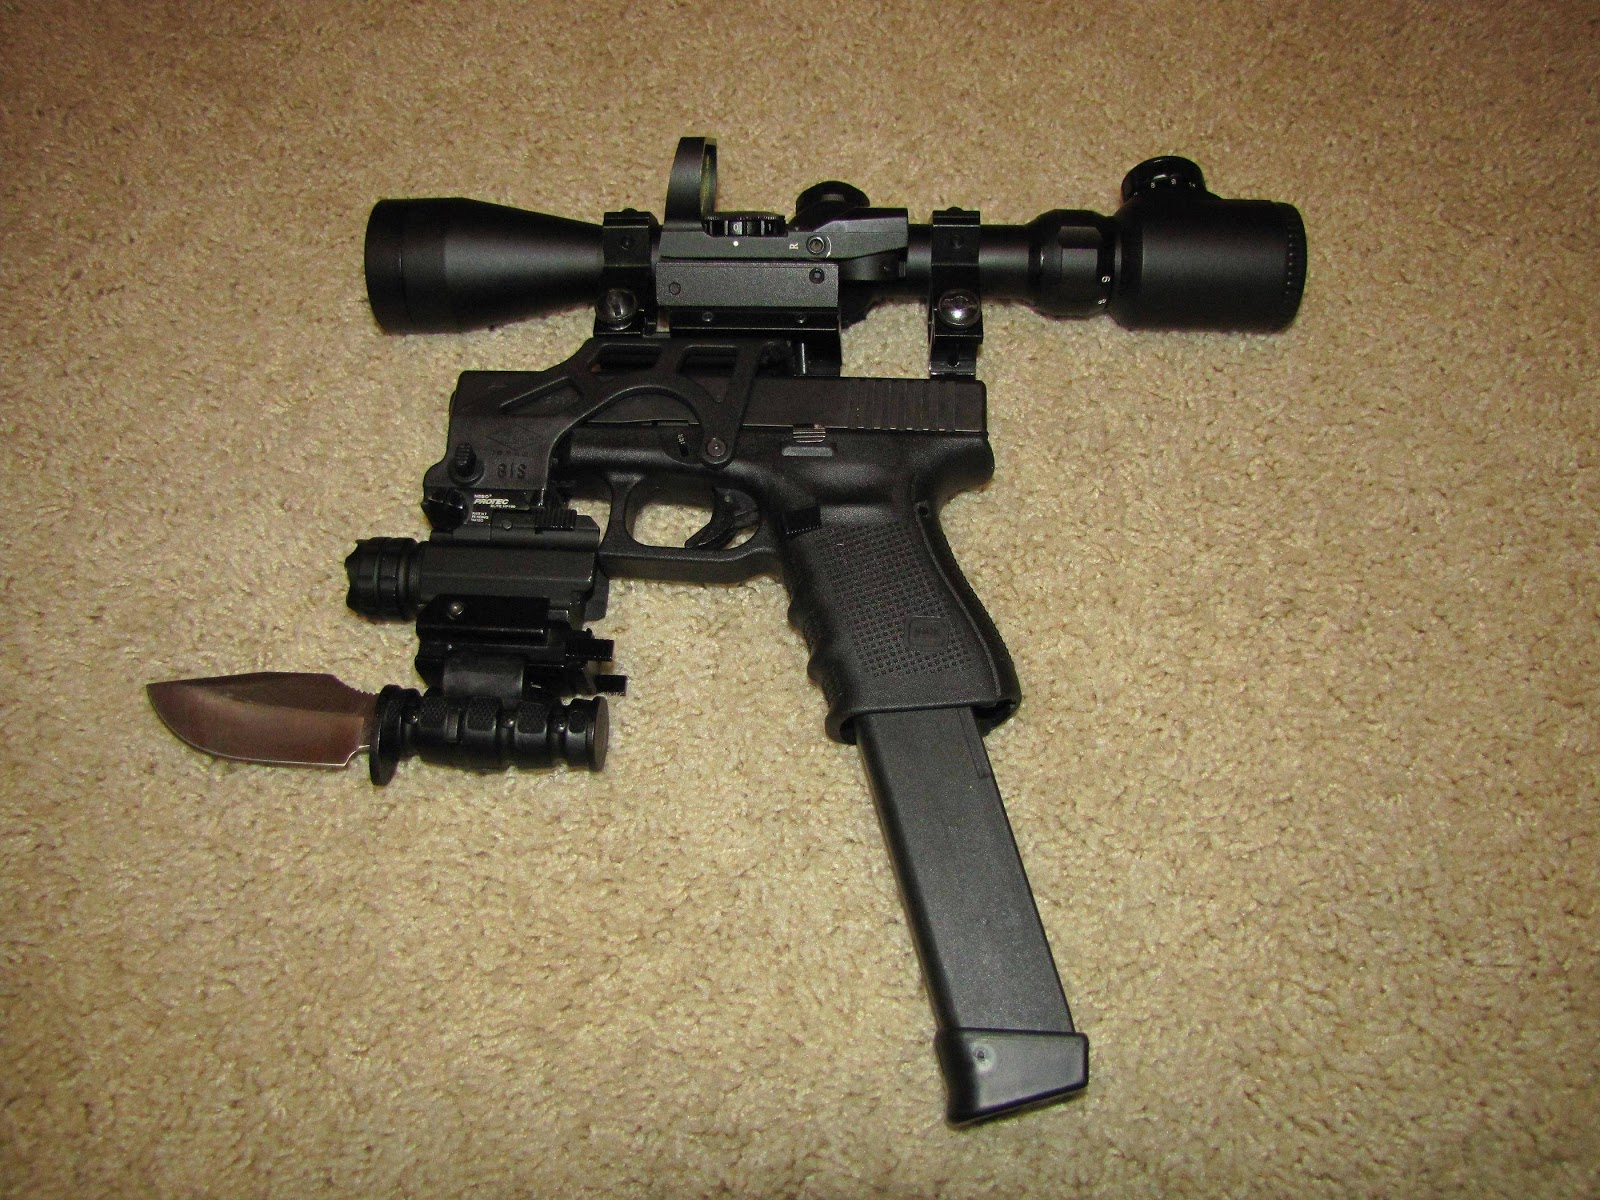 169 best Tacti-COOL/ REDICULOUS tactical stuff images on